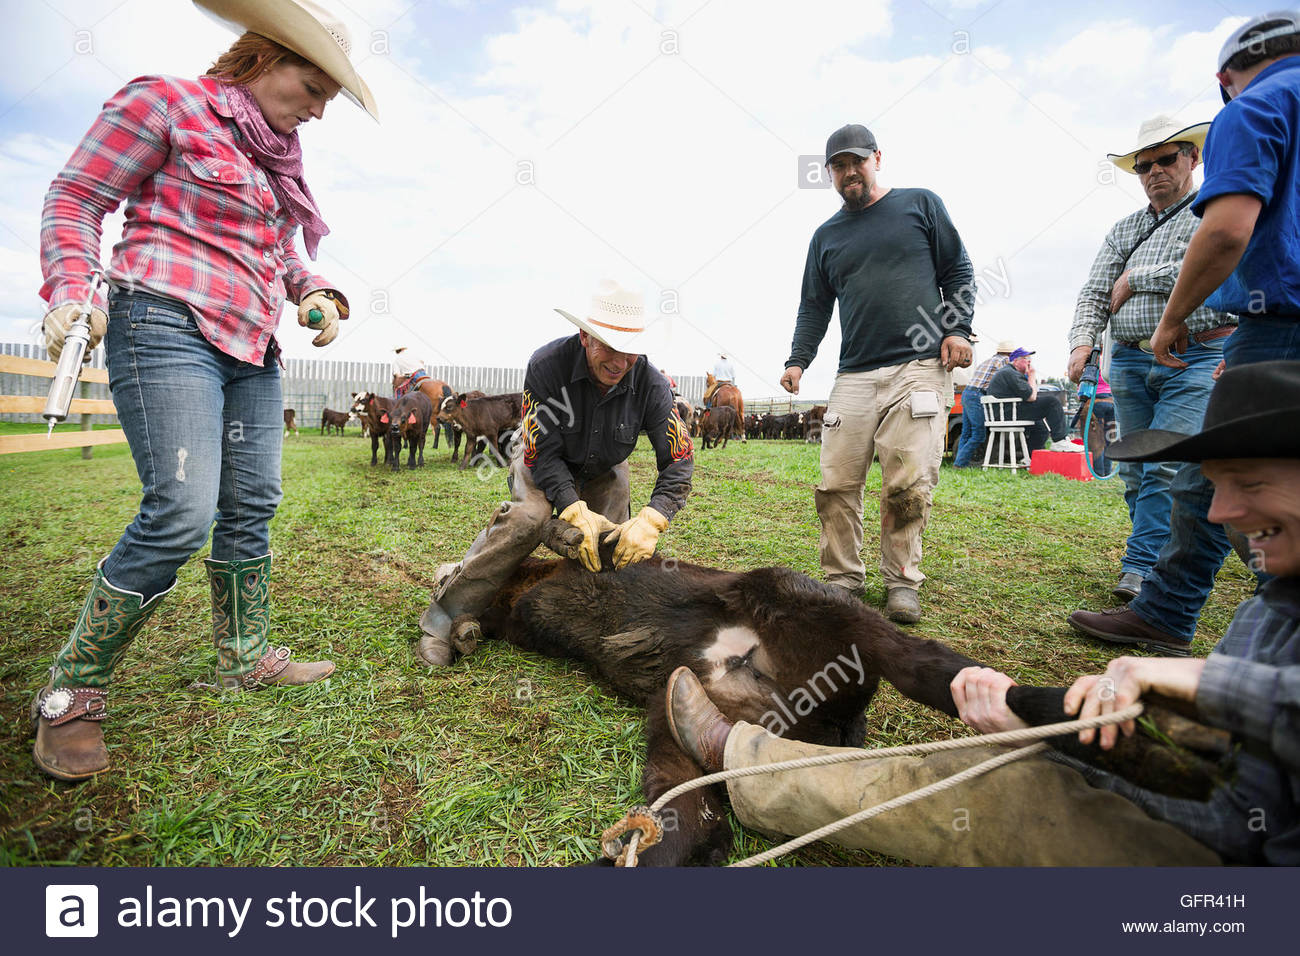 Cattle ranchers preparing to vaccinate cow Stock Photo